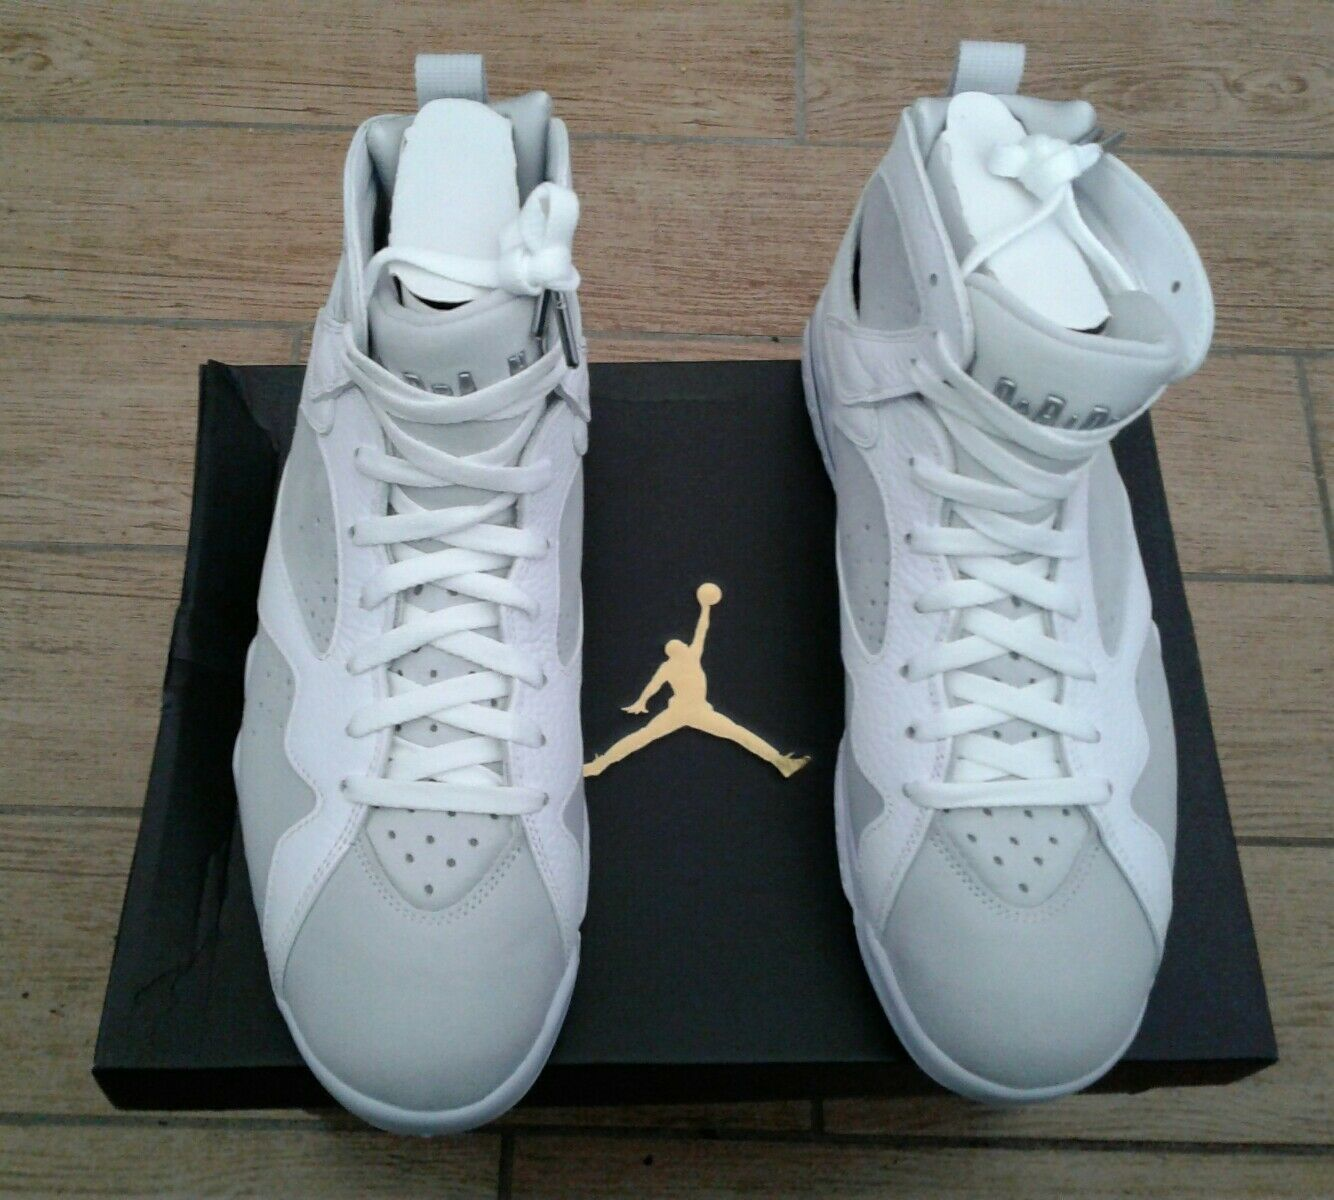 Air Jordan 7 Retro 'Pure Platinum' 304775-120 White Metallic Silver Men Sz 11.5